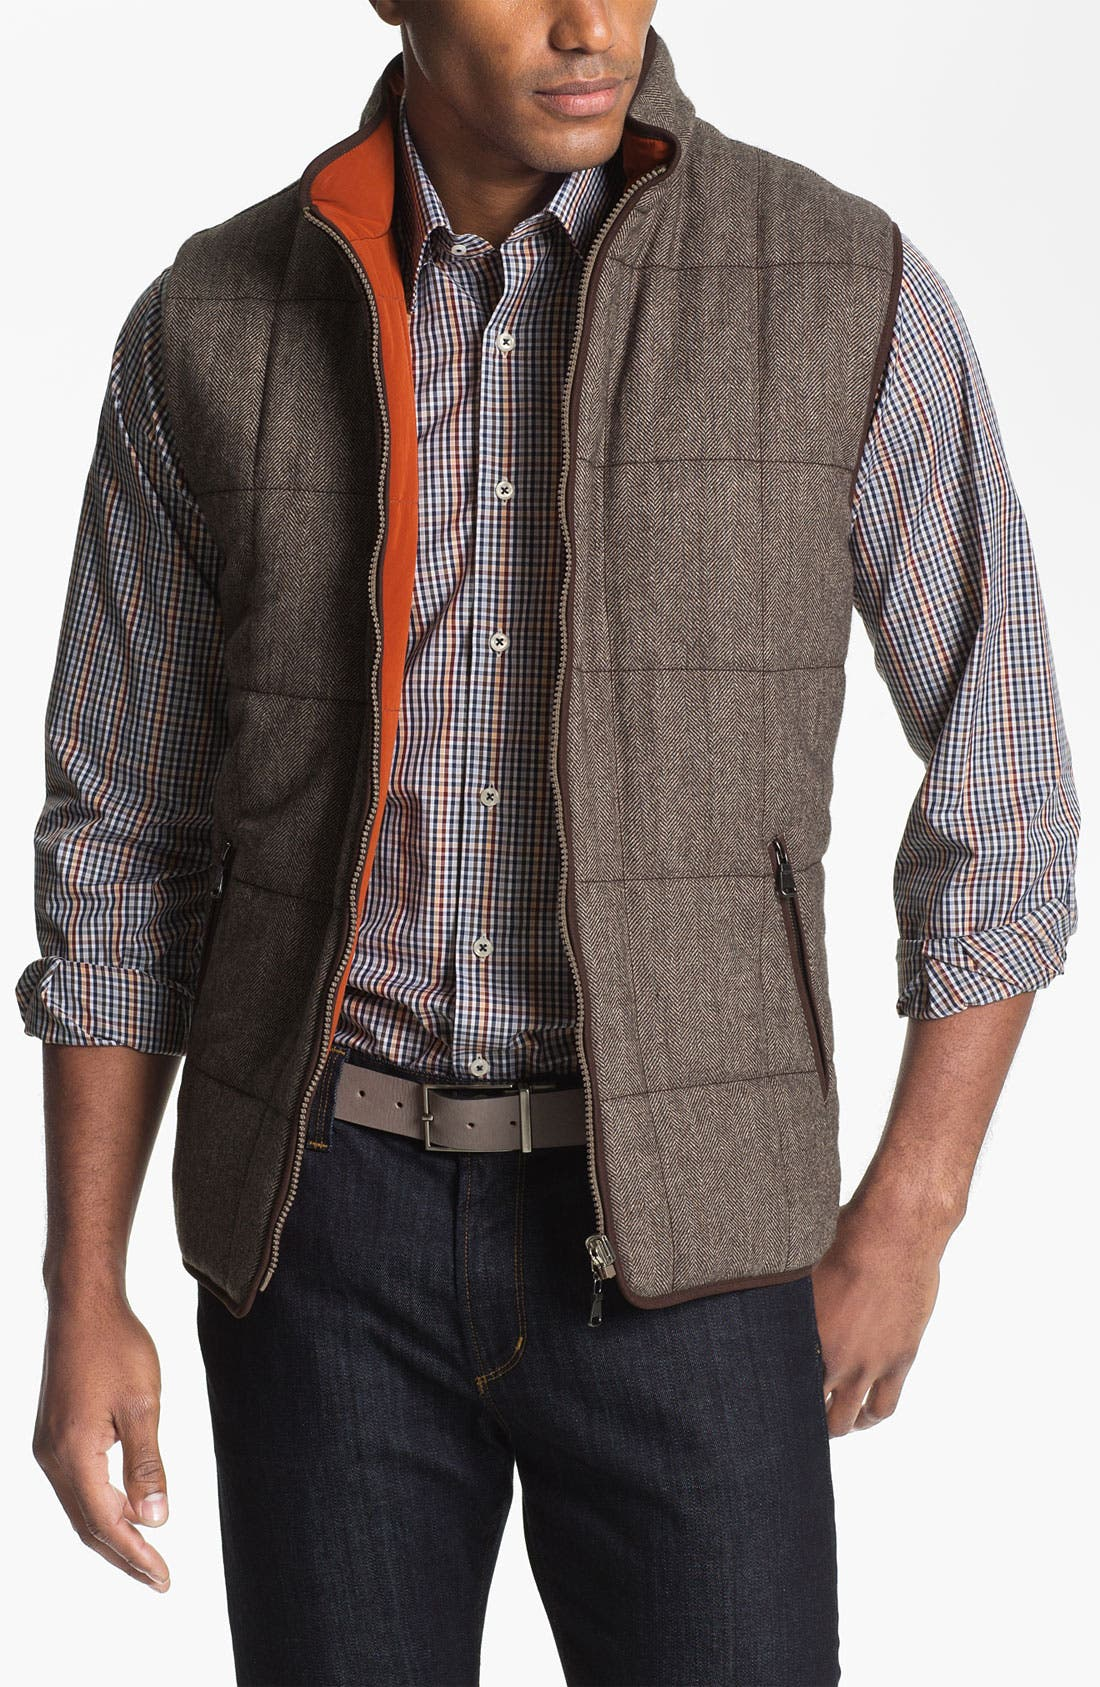 Alternate Image 1 Selected - Tommy Bahama 'Fully Vested' Reversible Vest